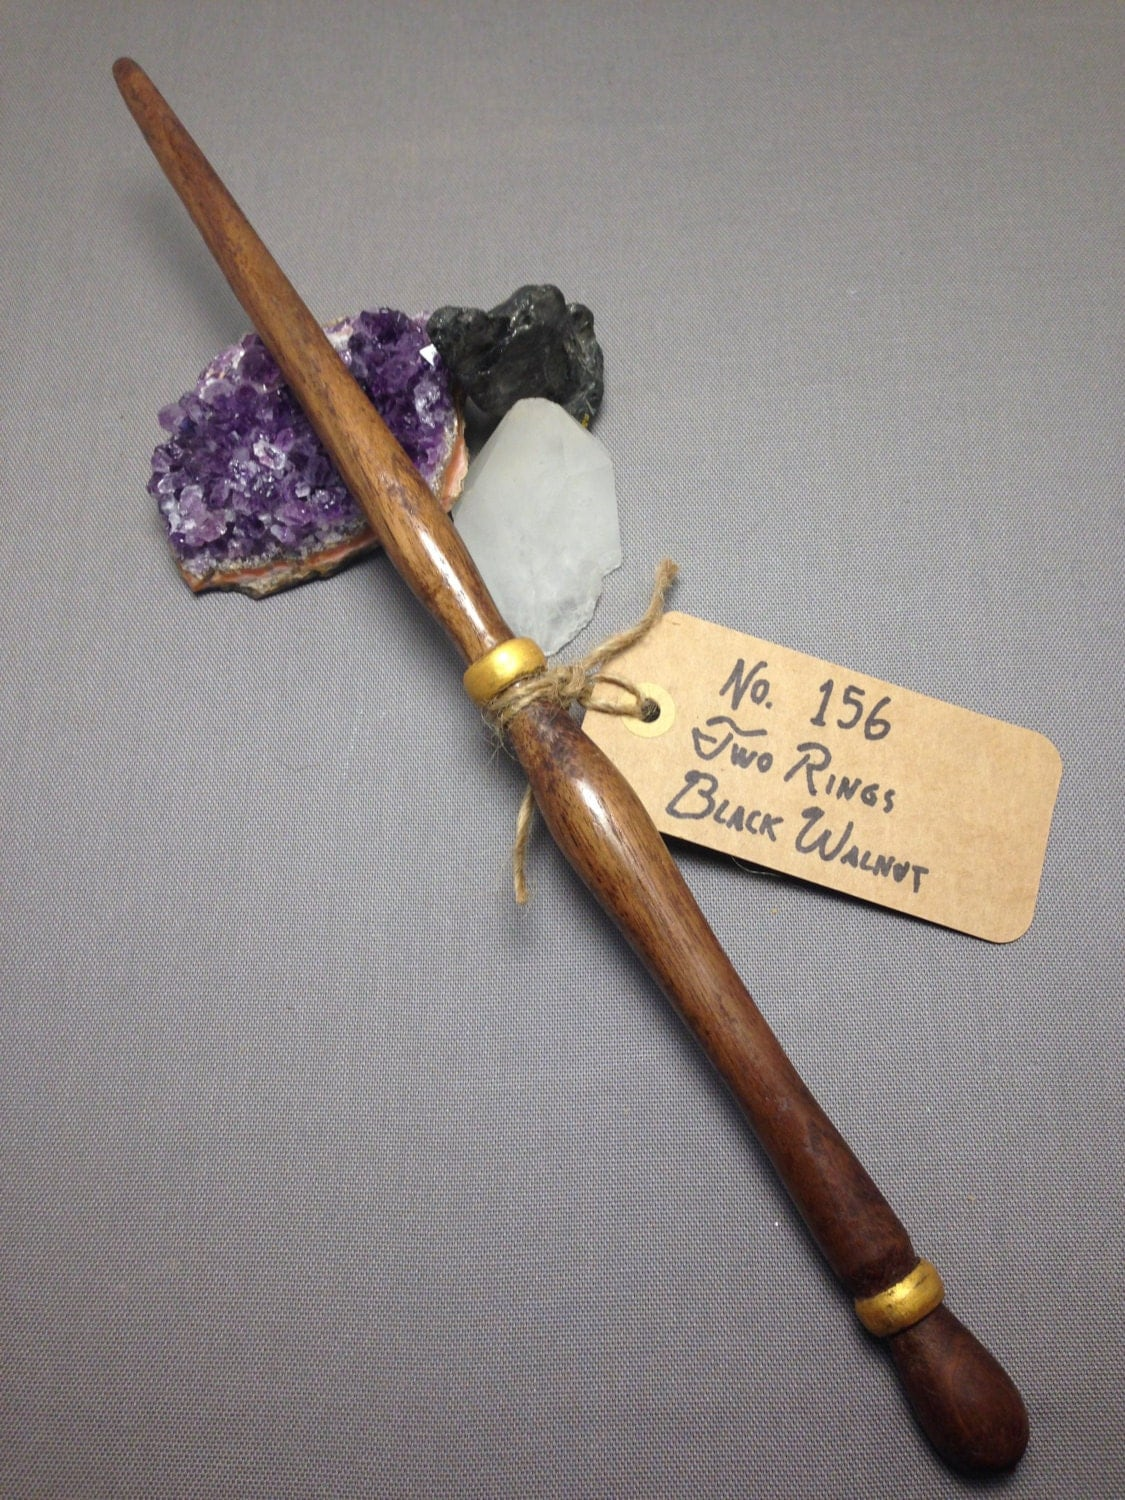 Witch Wands Real: Wood Magic Wand No. 156 Two Rings Walnut Wizard Scepter Witch